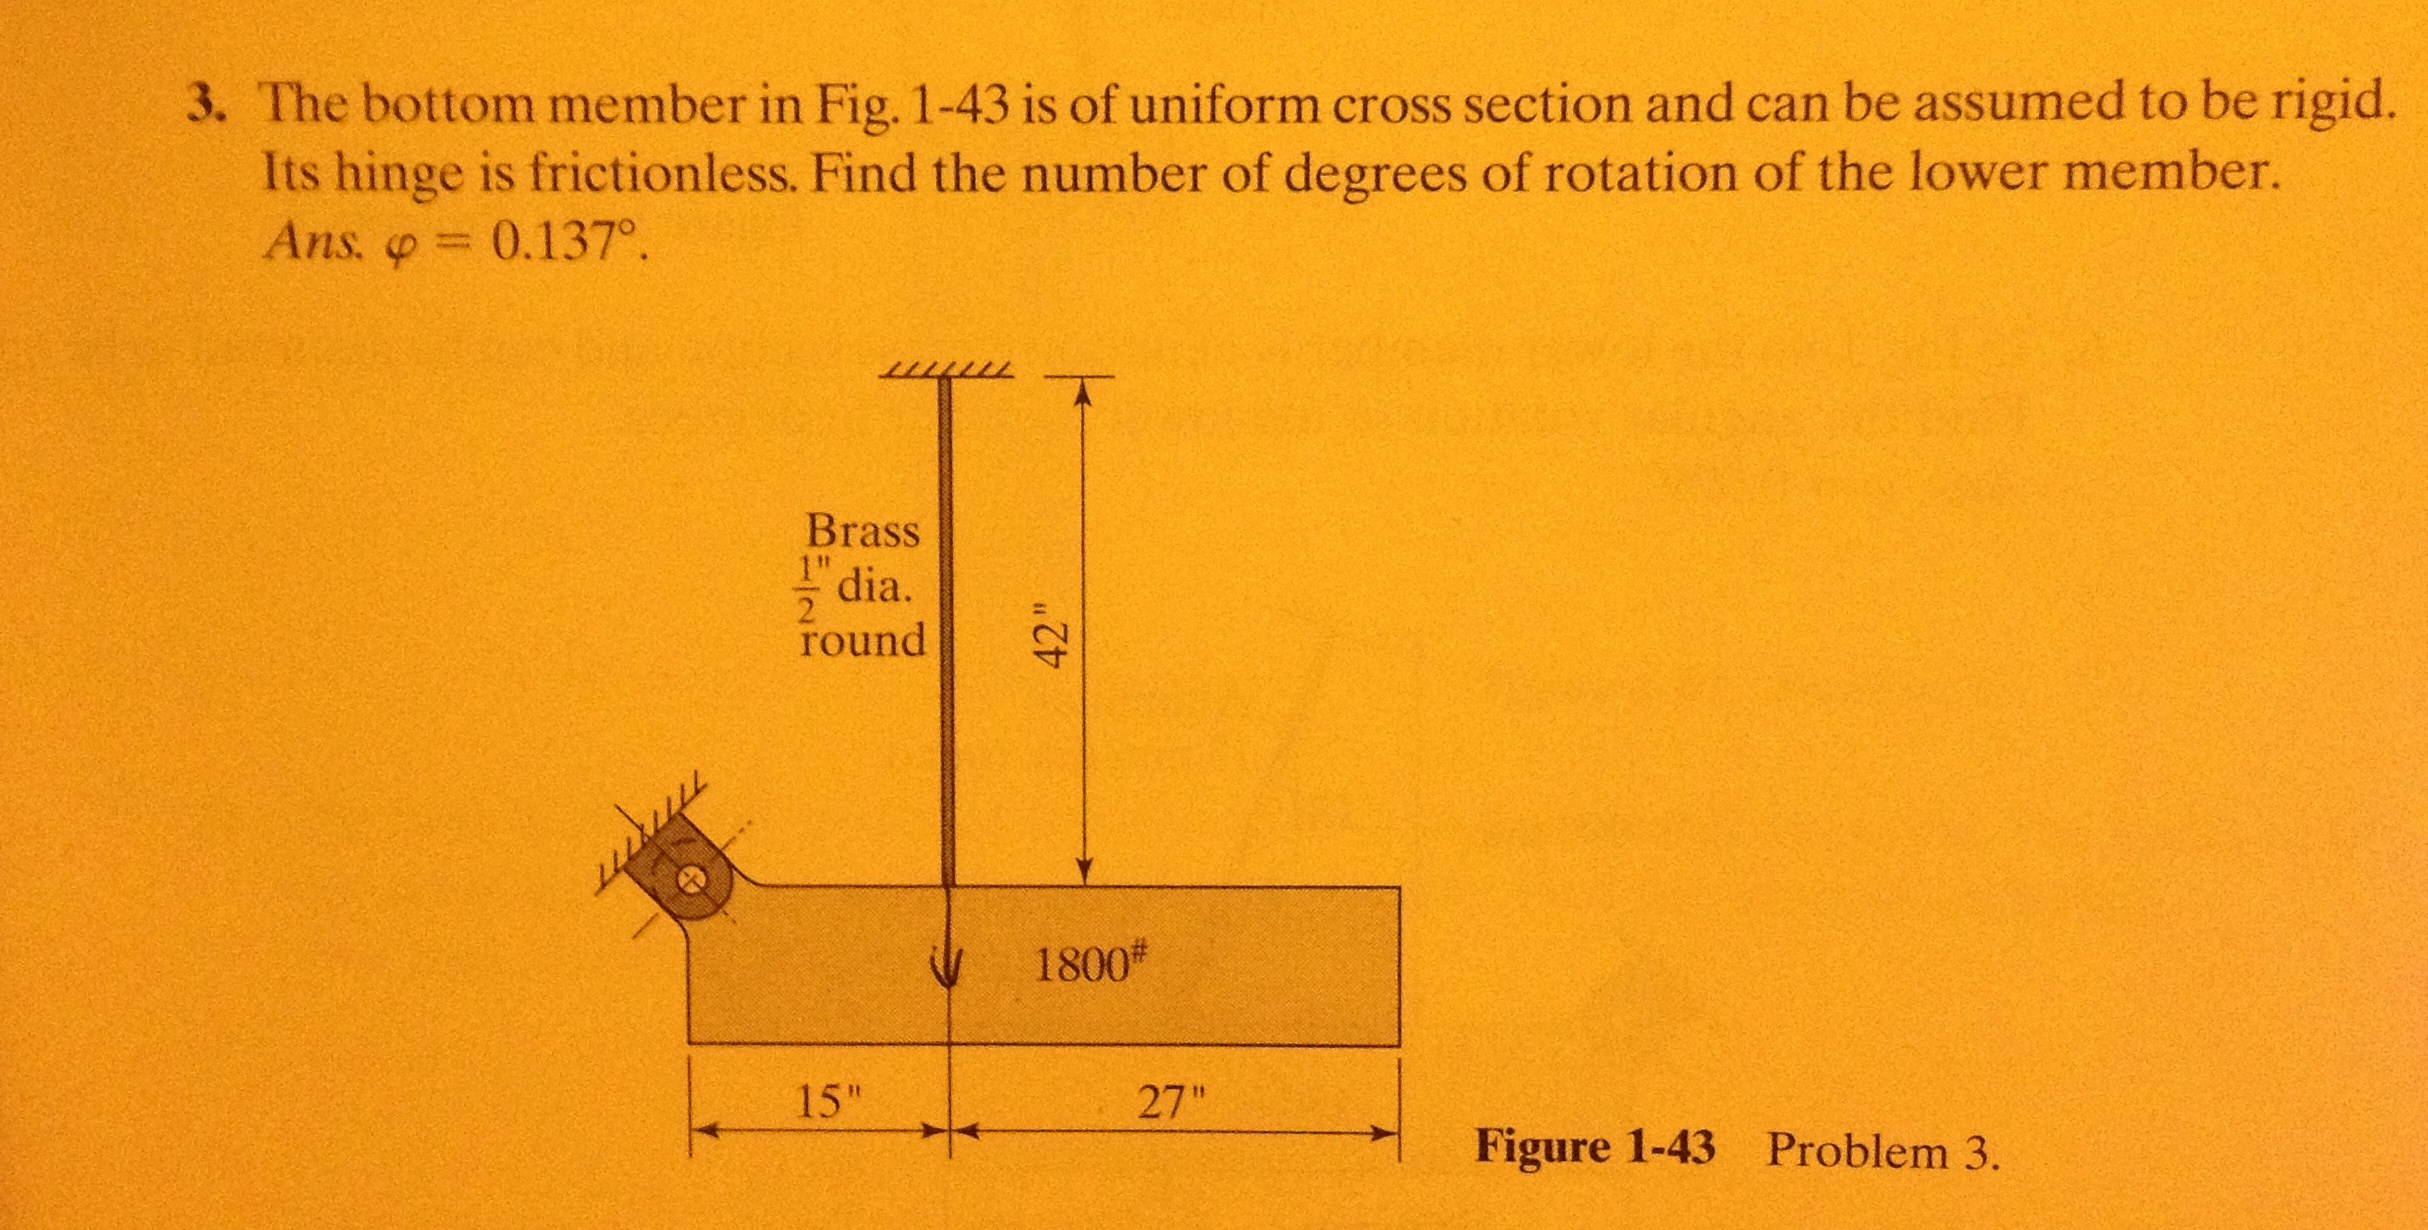 The bottom member in Fig. 1-43 is of uniform cross